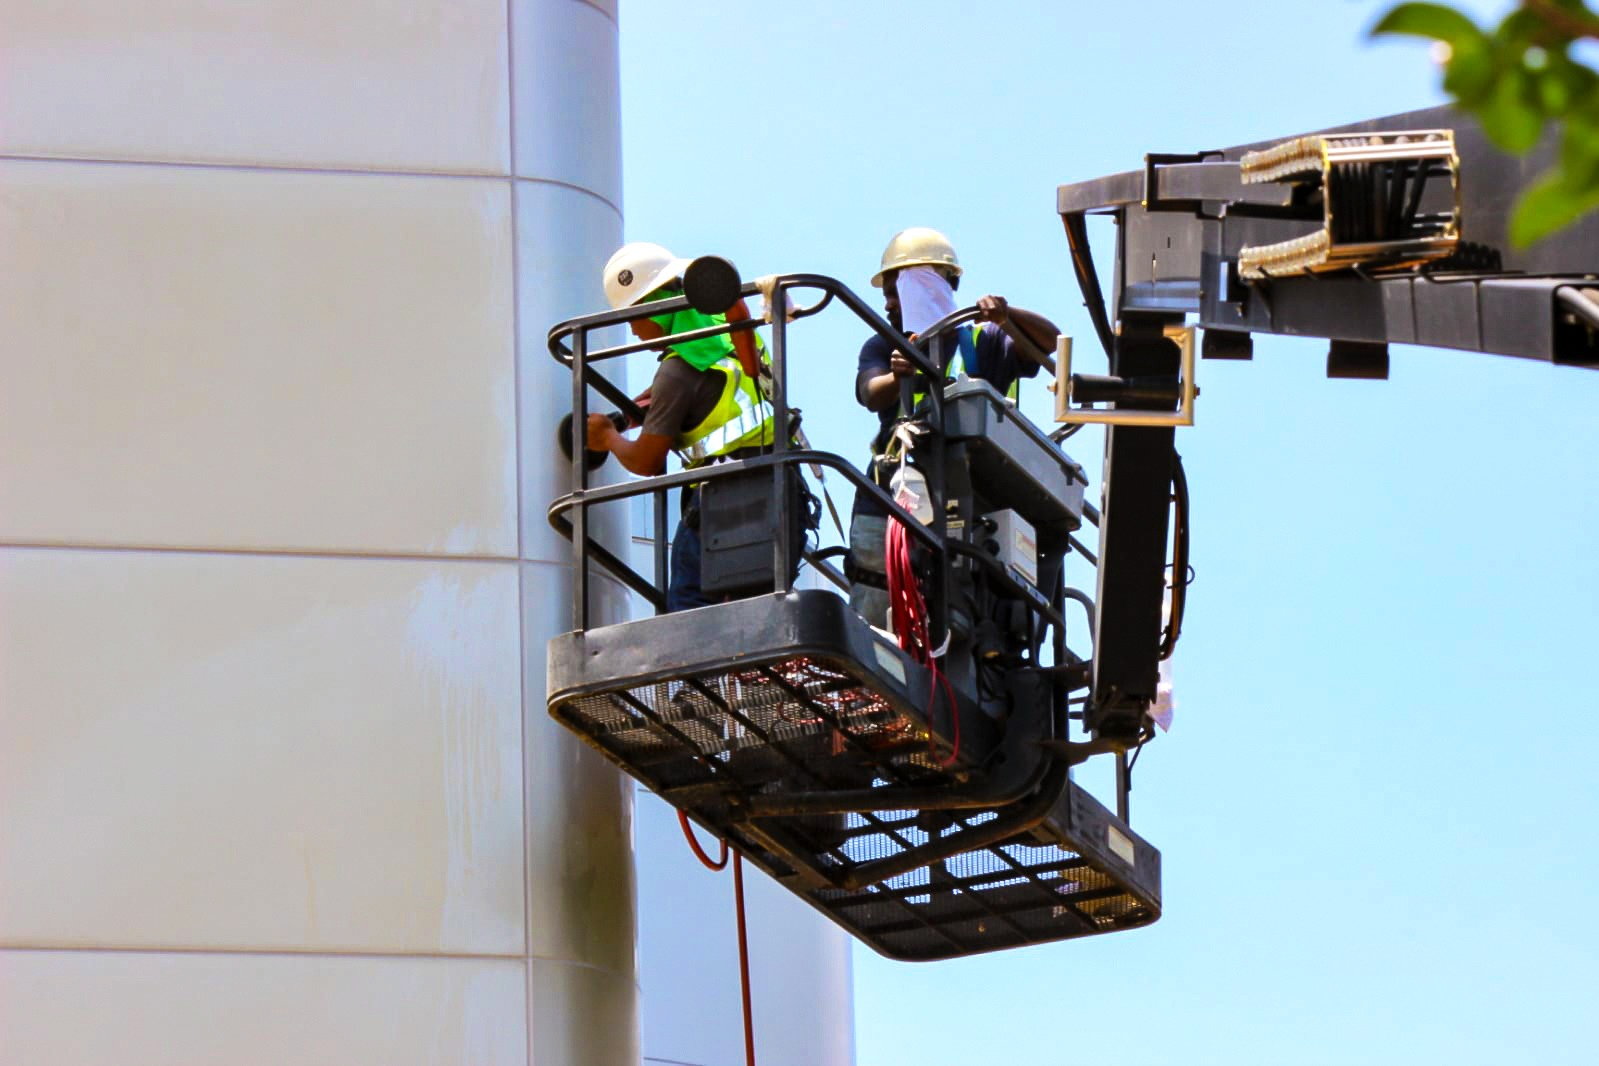 Technicians on crane at Ruby Hicks Hall at Tri-County Technical College in Pendleton, SC